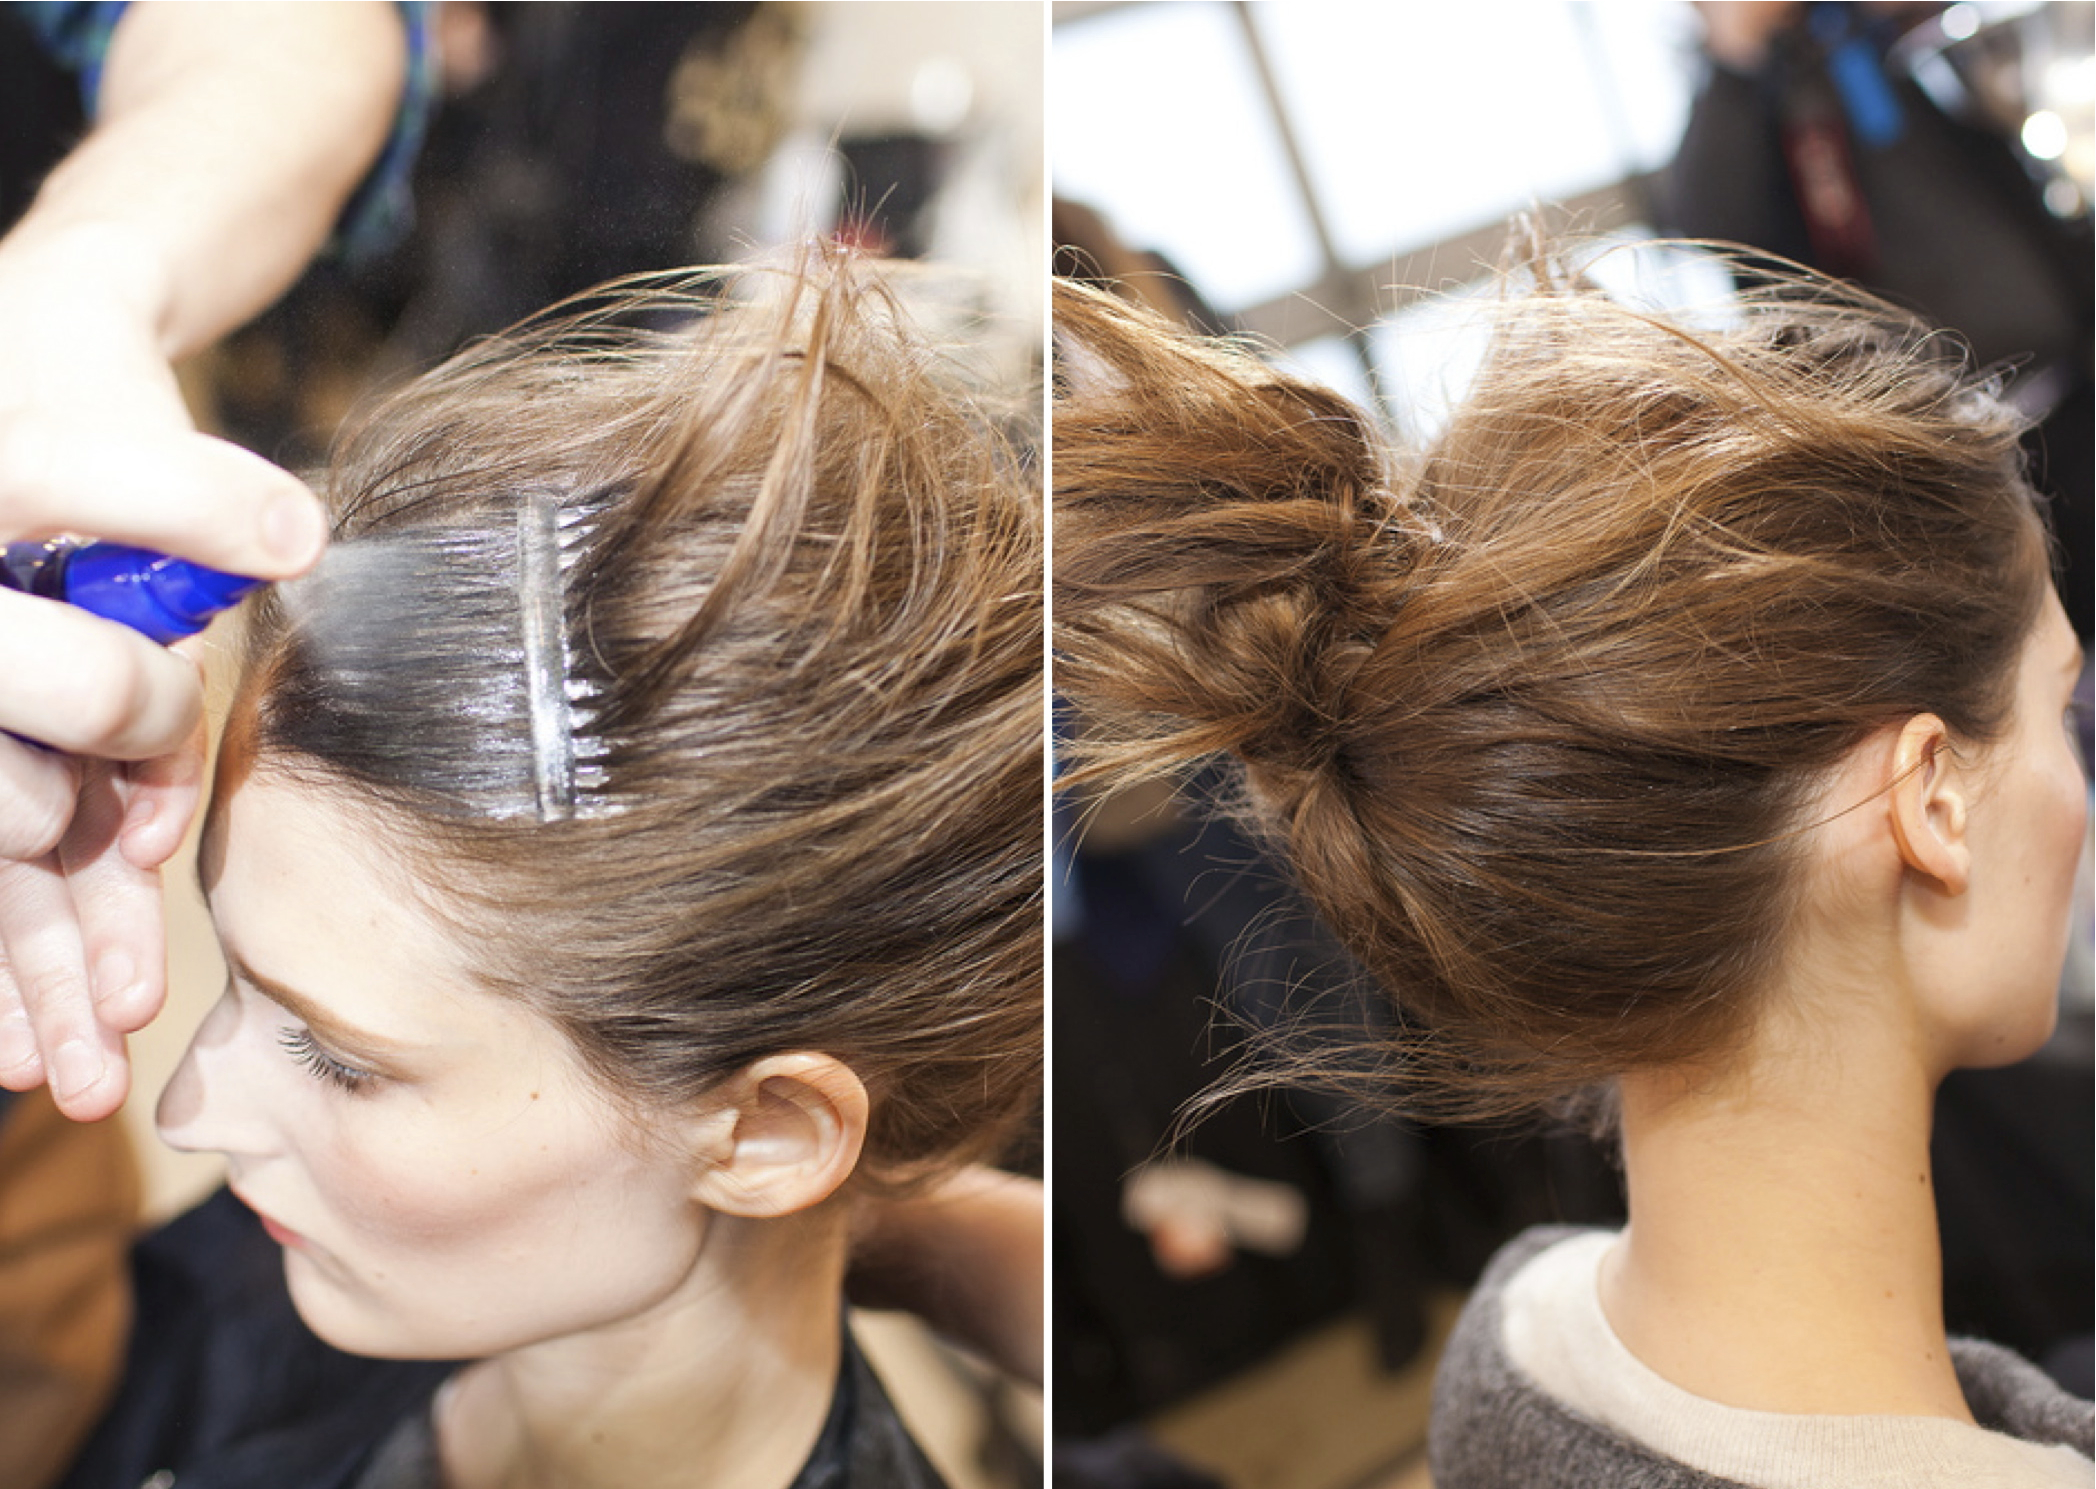 Air Control Hair Spray sets the comb marks and windblown style